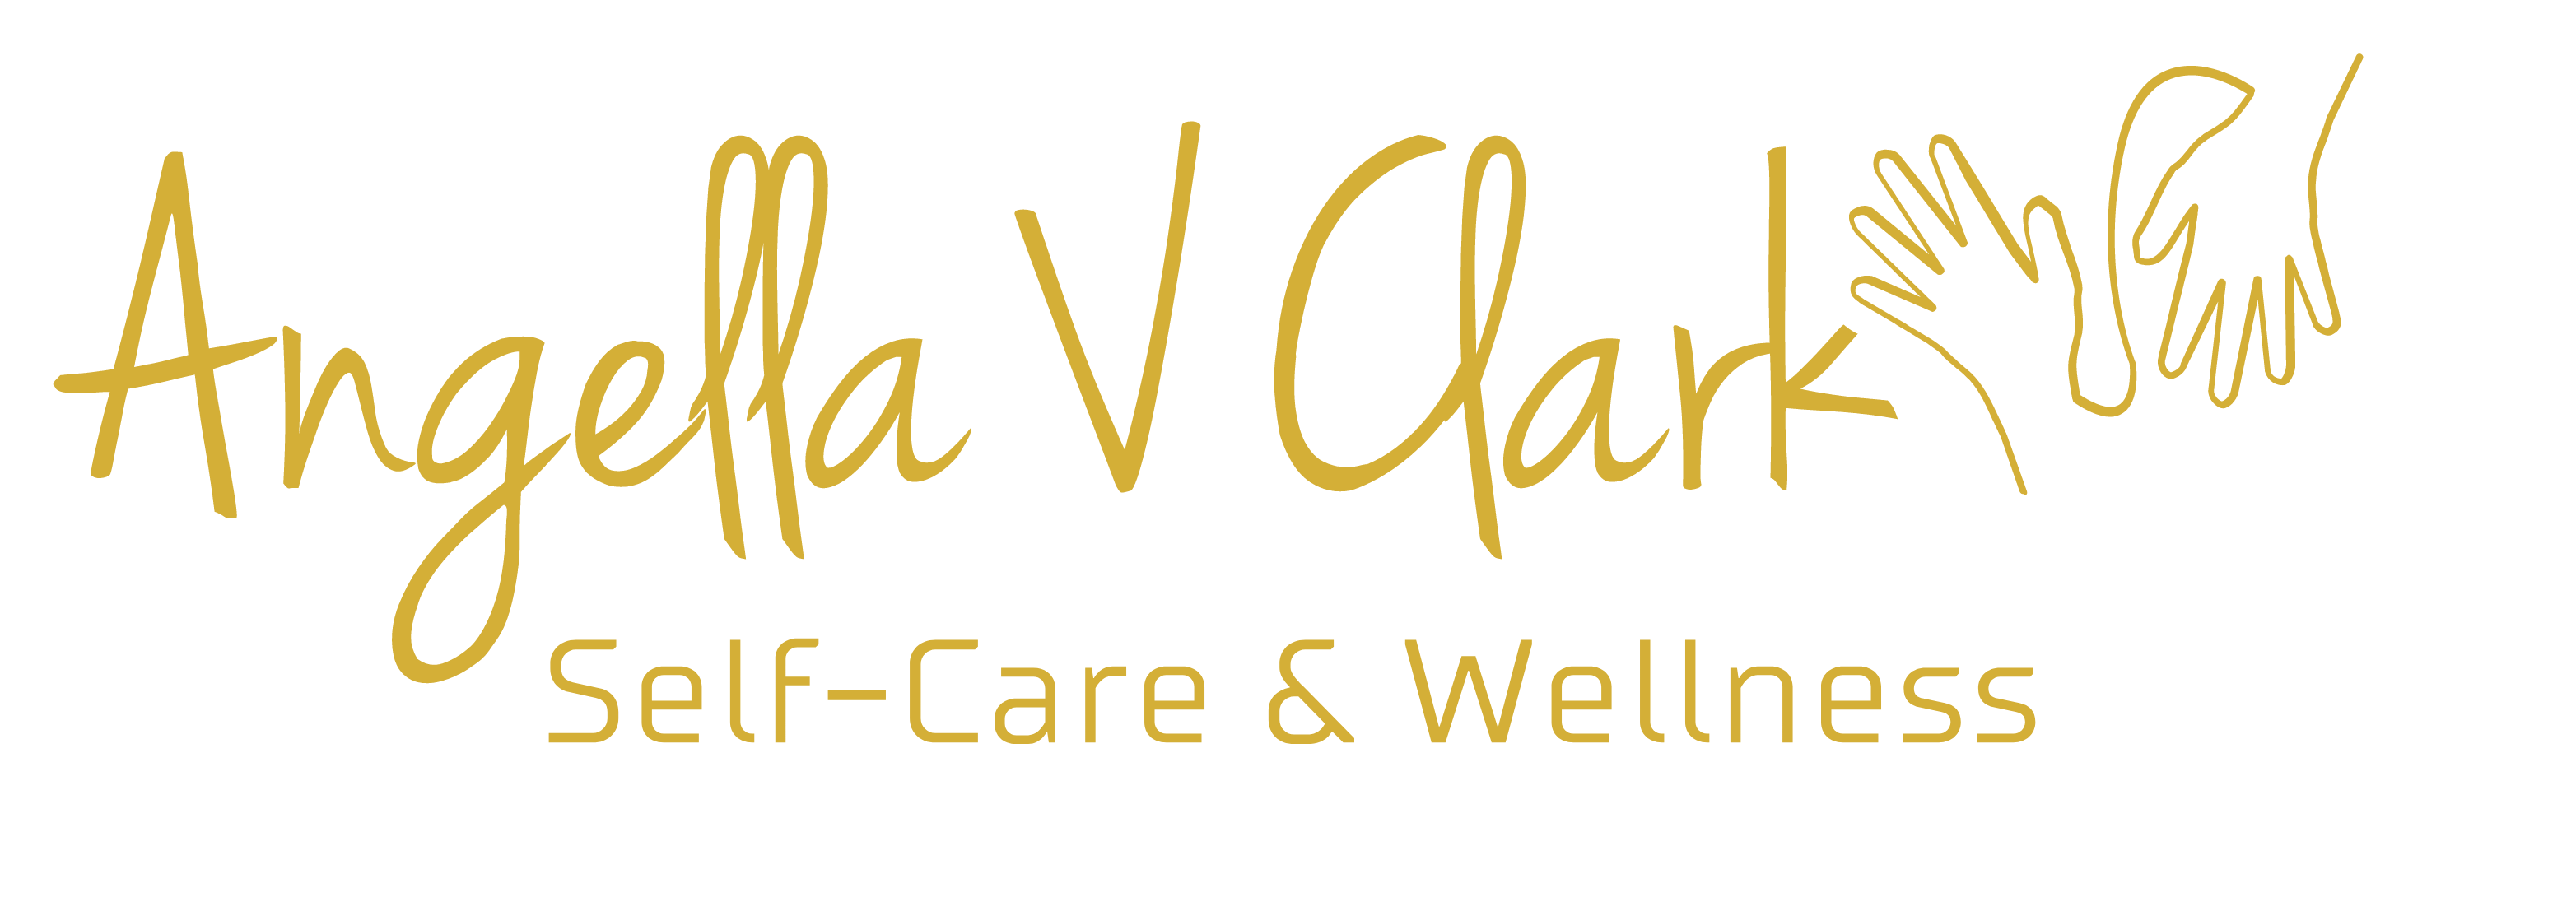 Angella V Clark Self-Care & Wellness